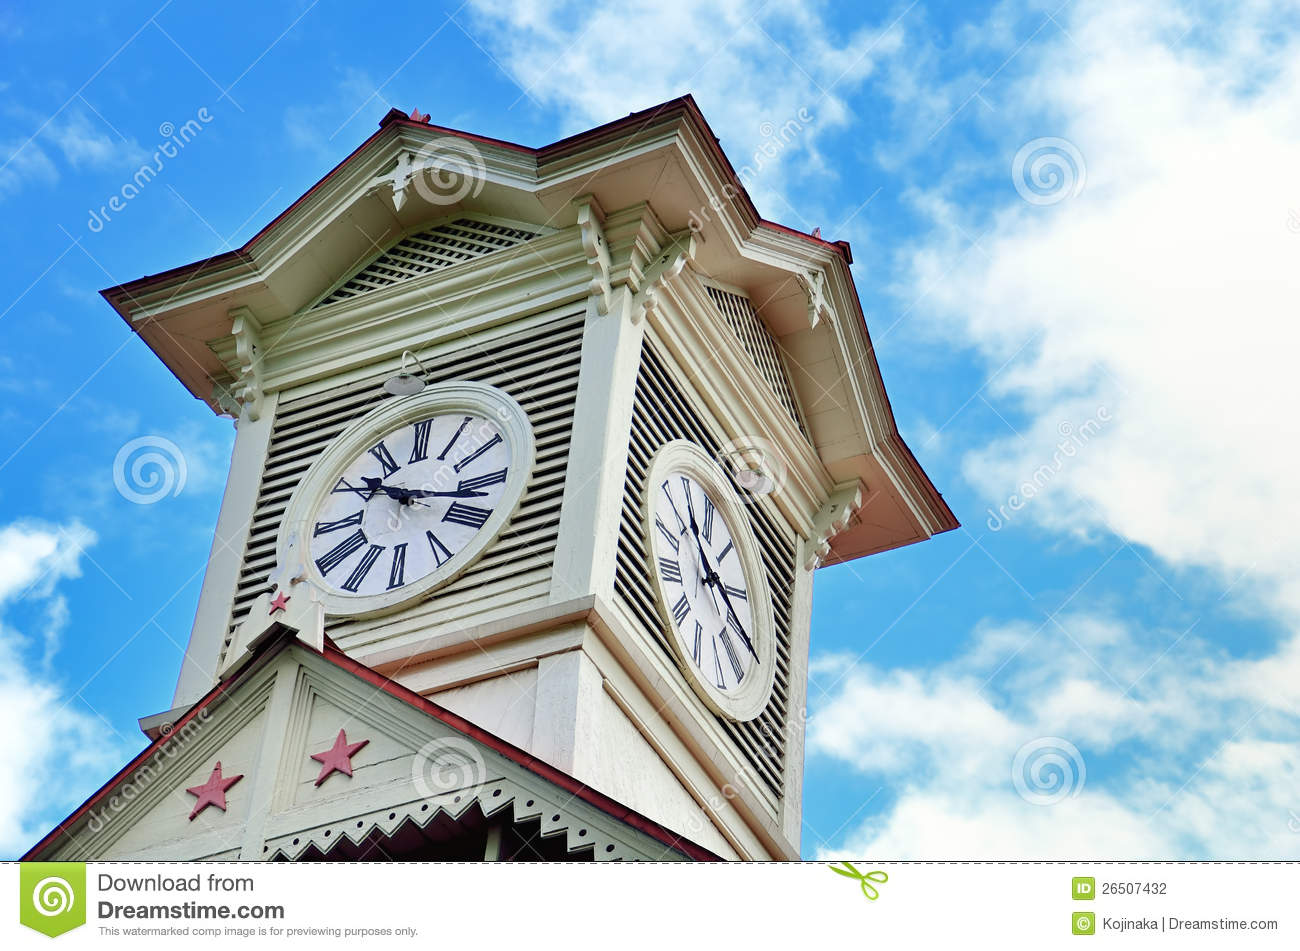 Sapporo Clock Tower. Stock Photography - Image: 26507432